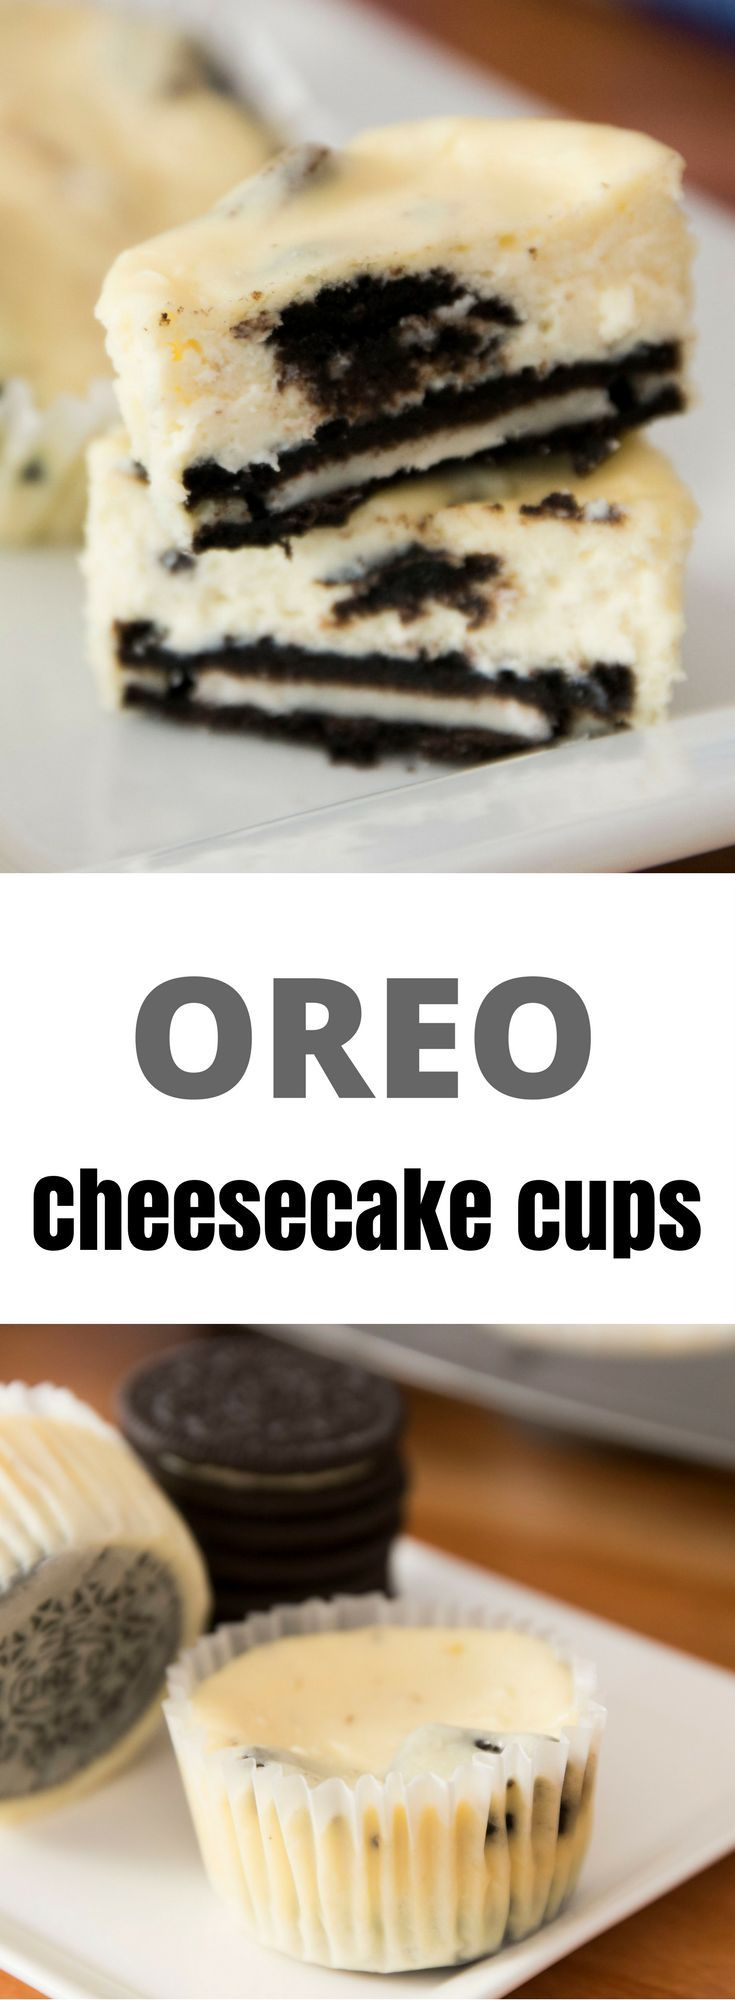 Oreo cheesecake on Pinterest | Oreo cheescake recipes, Oreo cheesecake ...